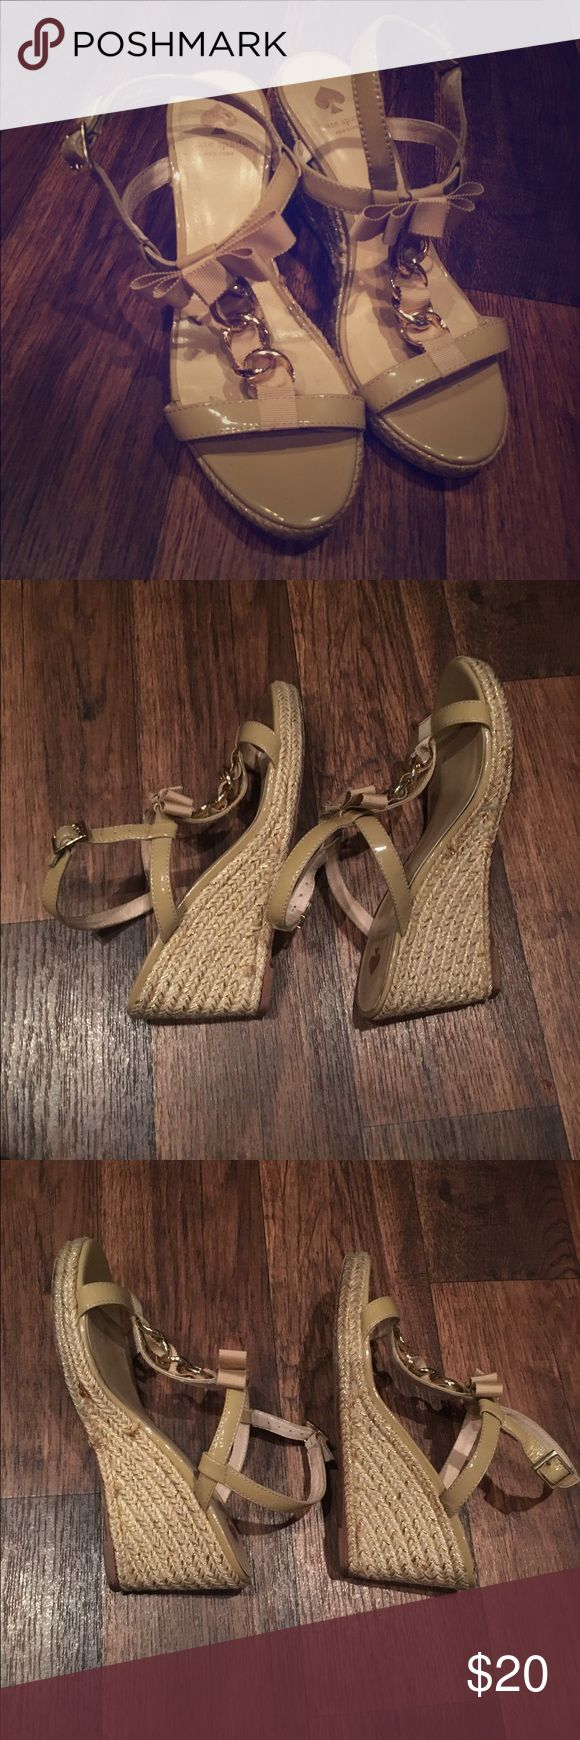 Nude espadrilles Kate Spade Cute chains. In good but used condition kate spade Shoes Espadrilles